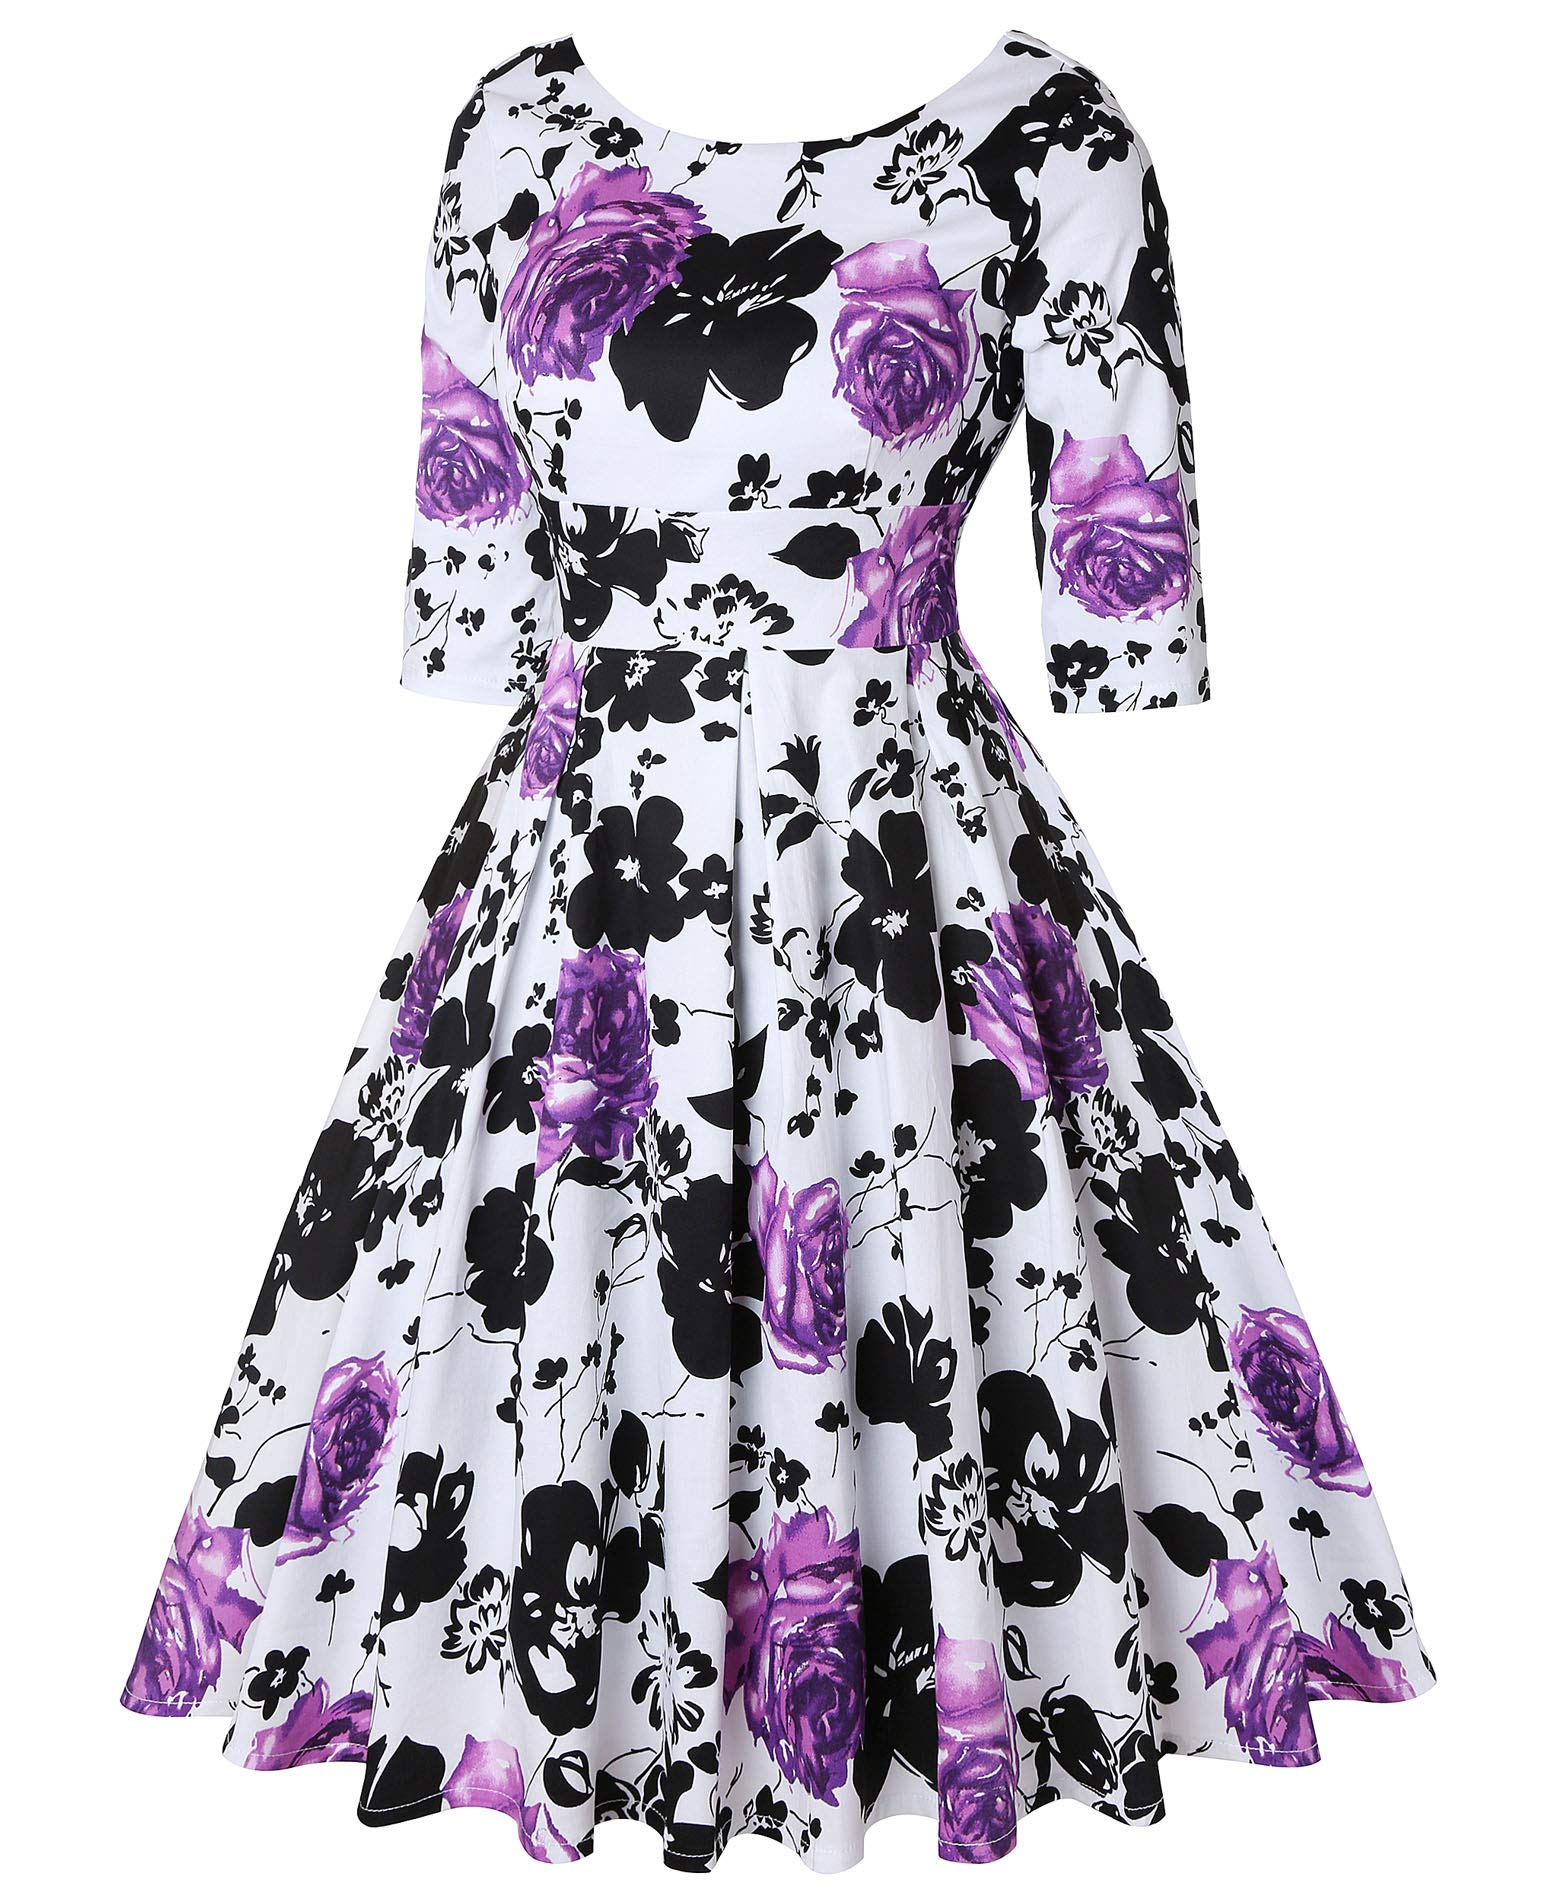 ROOSEY Women's 50s Style Swing Dress Vintage Retro Cocktail Evening Formal Dress by ROOSEY (Image #2)